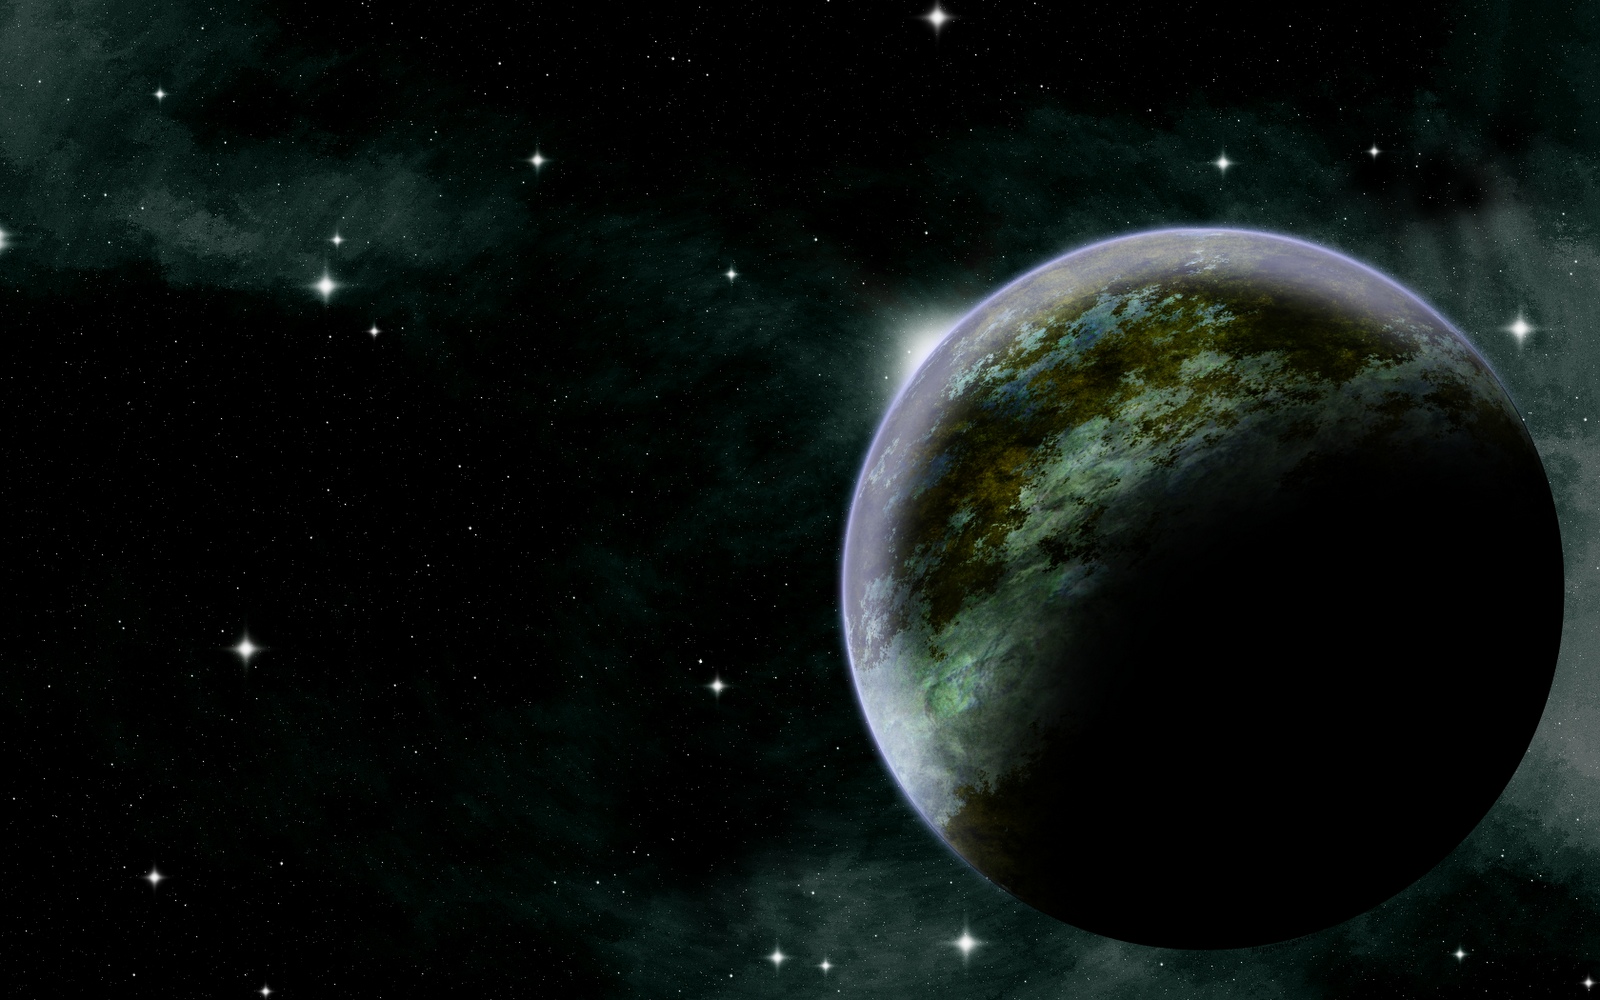 http://4.bp.blogspot.com/-JEYVJPOy4F0/TizwbQepFdI/AAAAAAAADN4/l5bu027uTw0/s1600/Blue_Green_Planet_Wallpaper_by_HippieKender.png